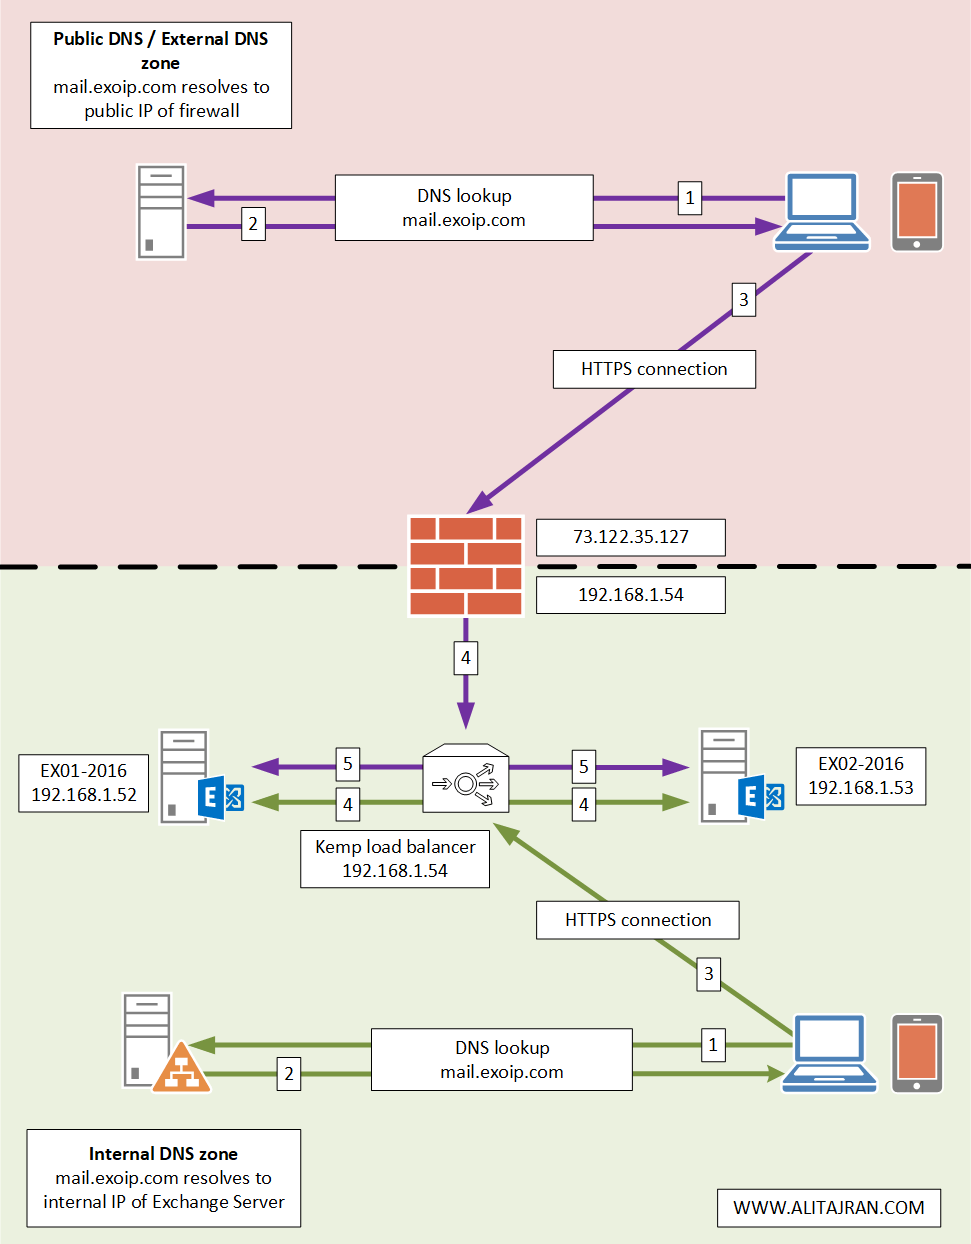 Exchange HTTPS high availability with Kemp load balancer architecture